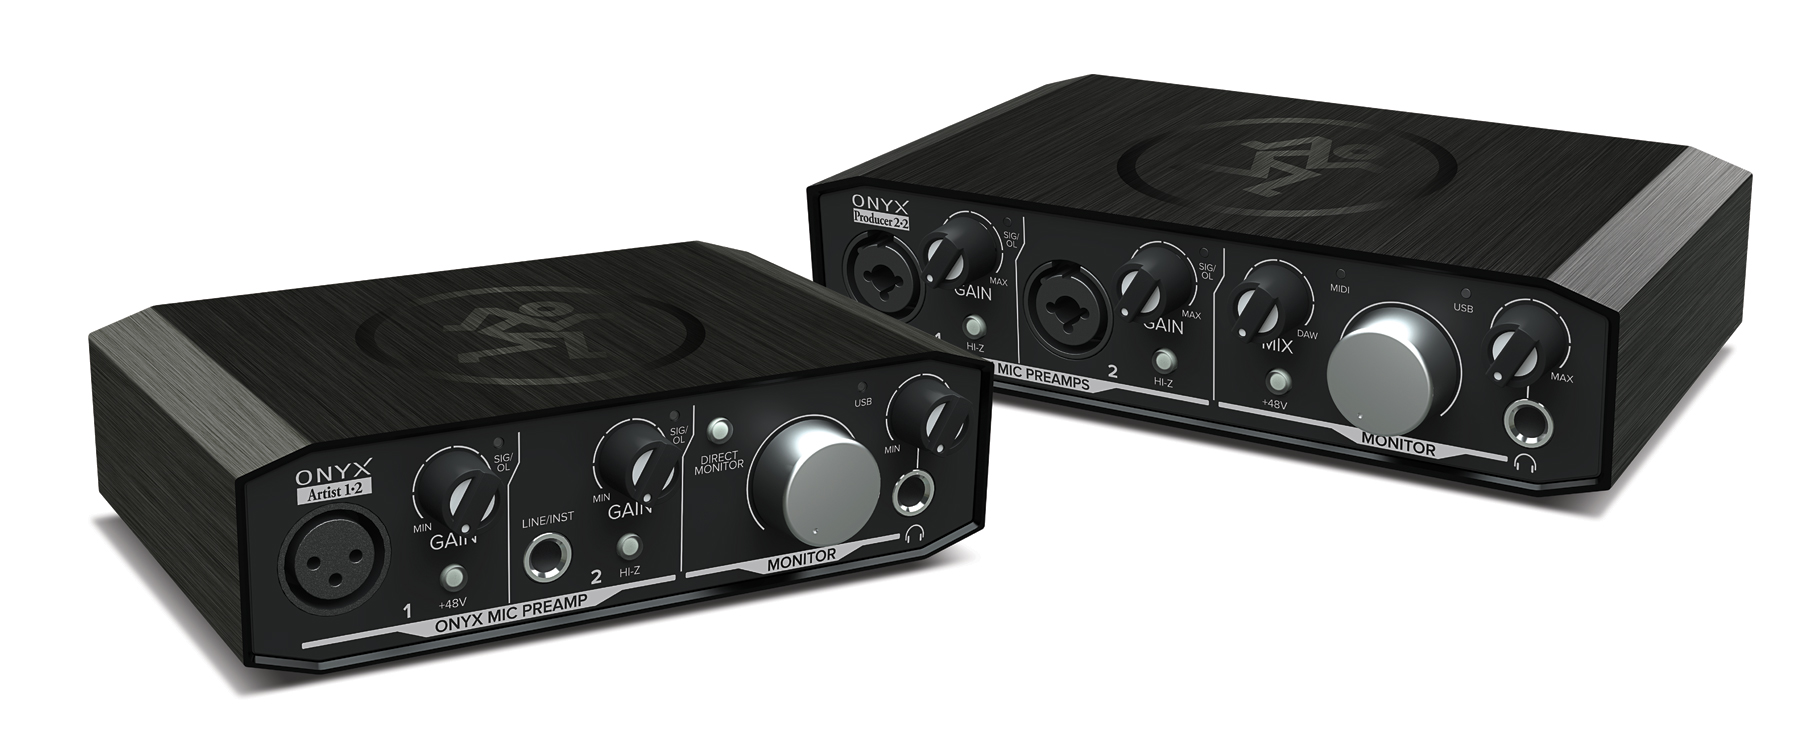 Mackie Onyx Producer 2.2 USB Recording Interface Review